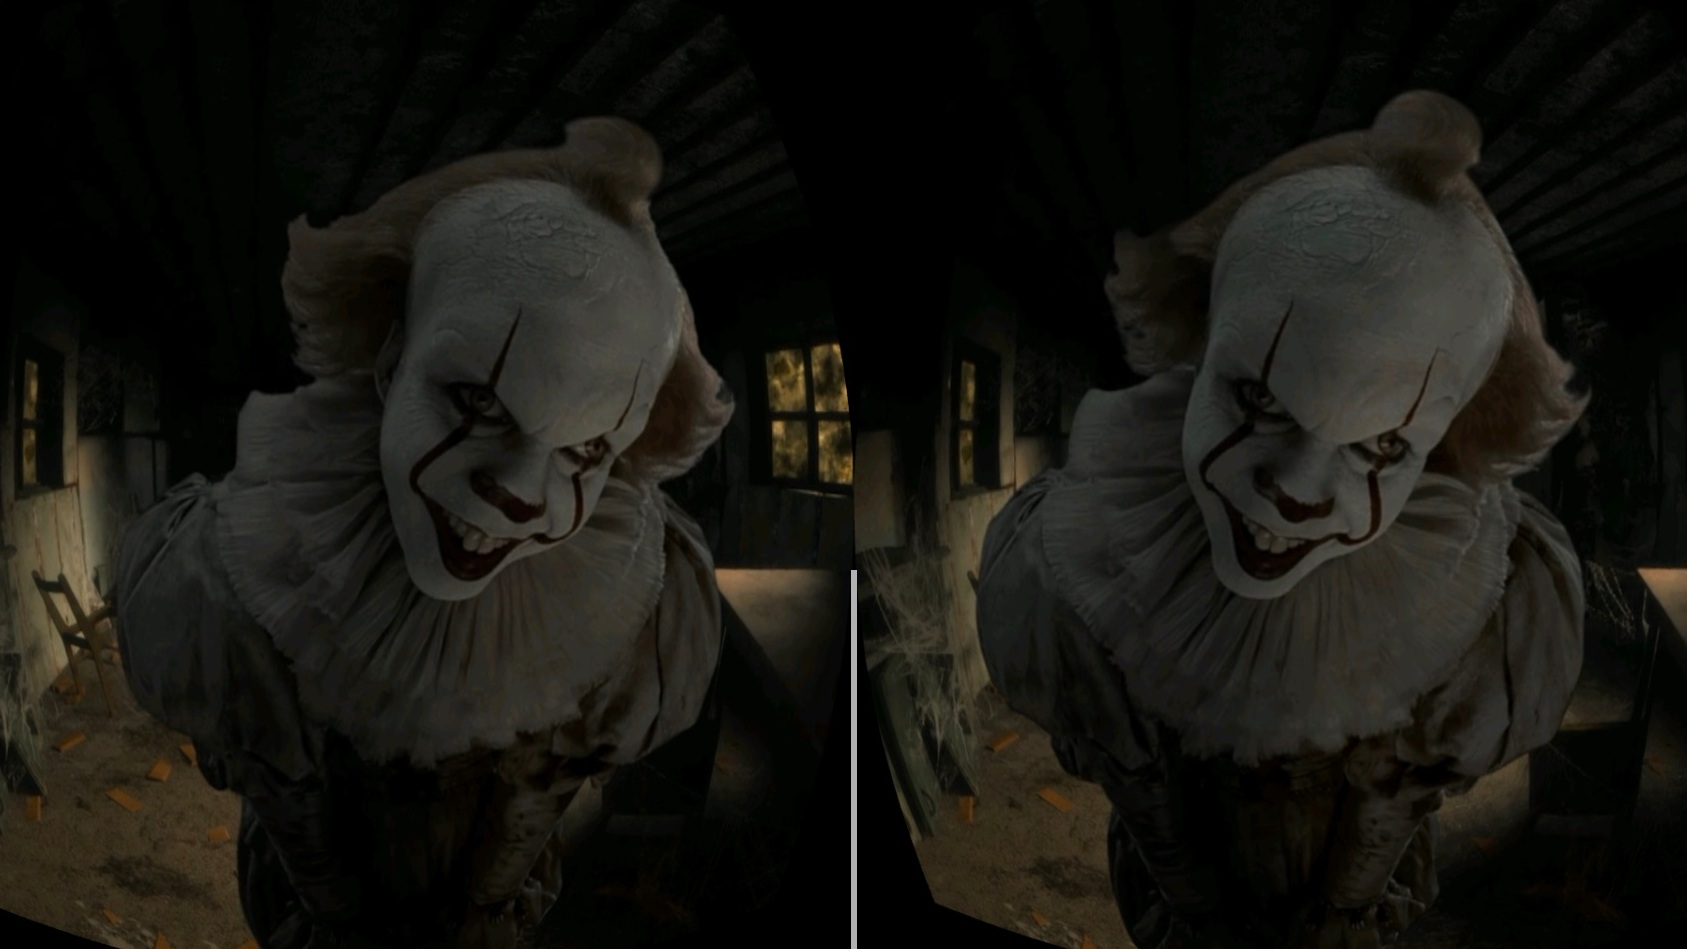 worked with sunnyboy Entertainment to create - IT: Escape Pennywise VR